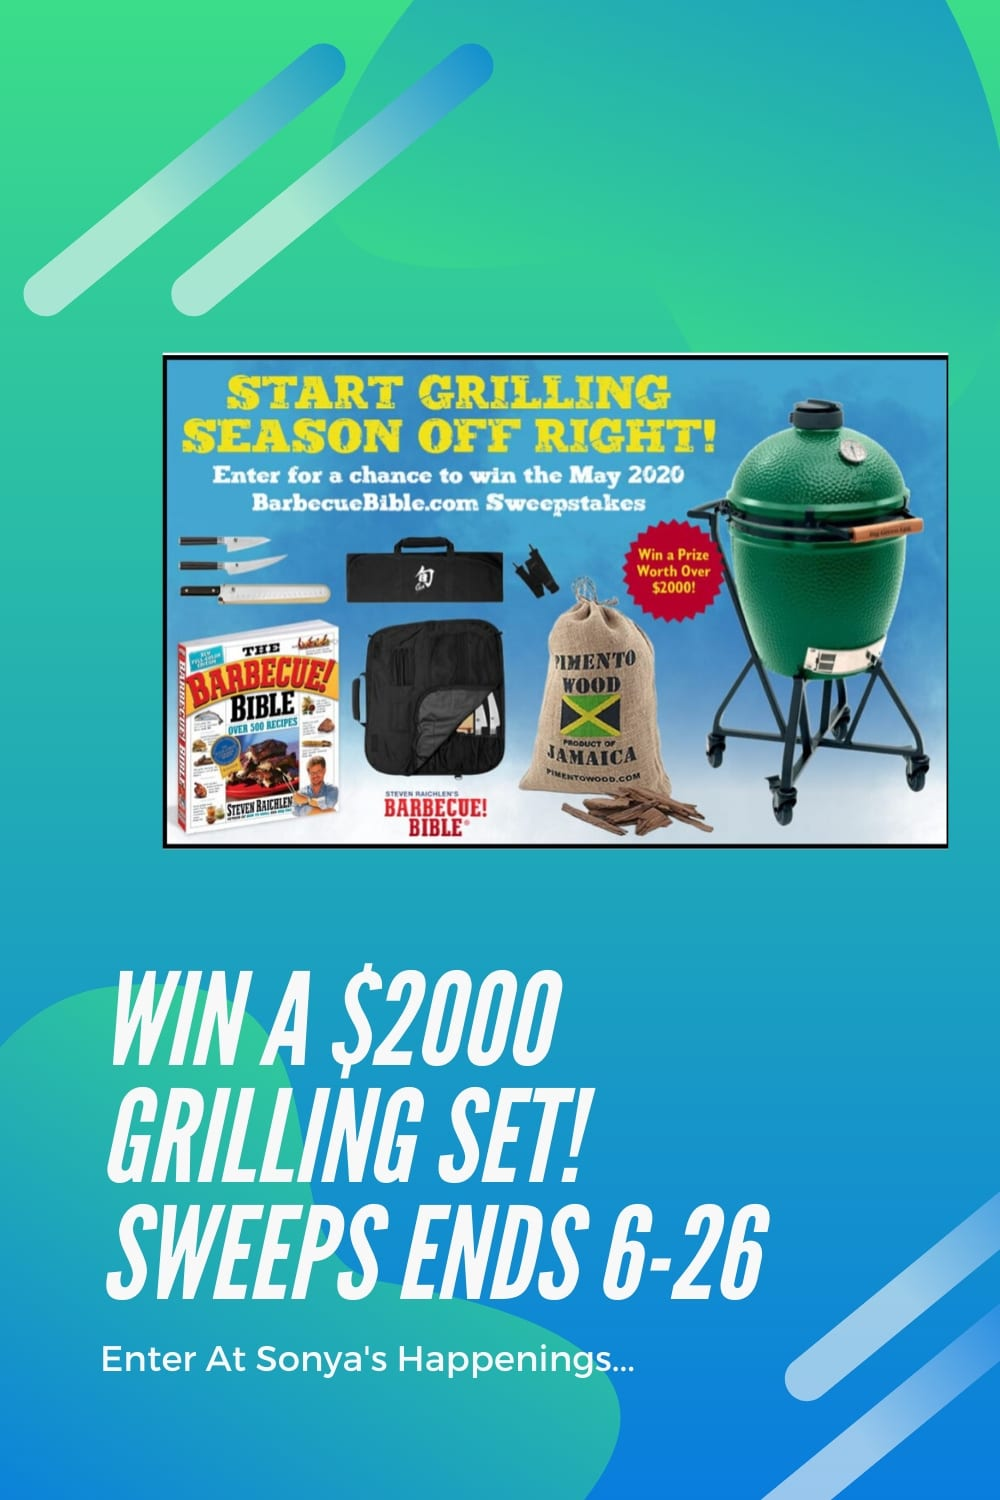 Win a $2000 grilling set~ sweeps ends 6-26